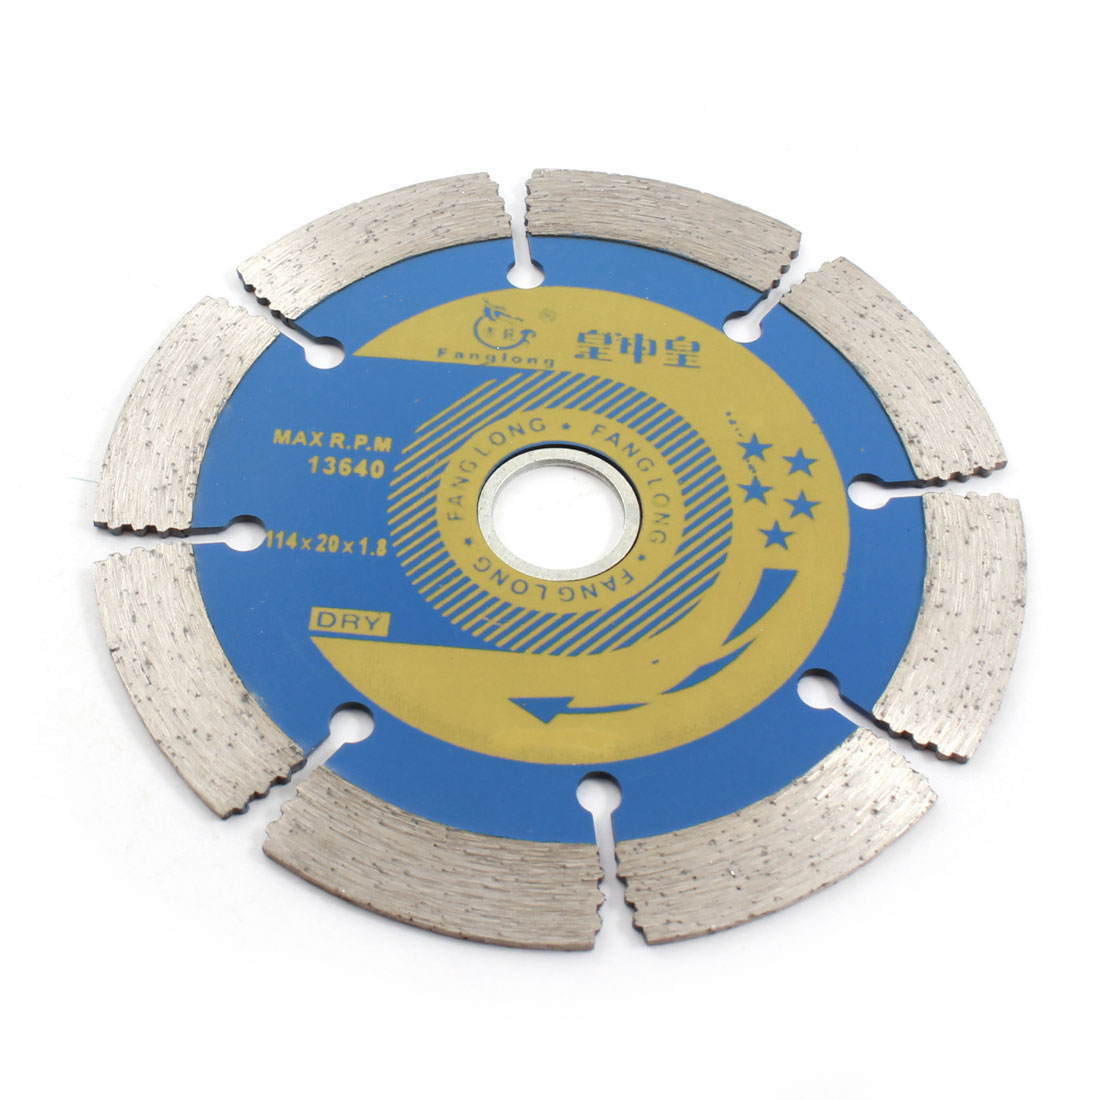 Silver Gray Blue Marble Cutting 114mm Dia Diamond Saw Blade 13640RPM